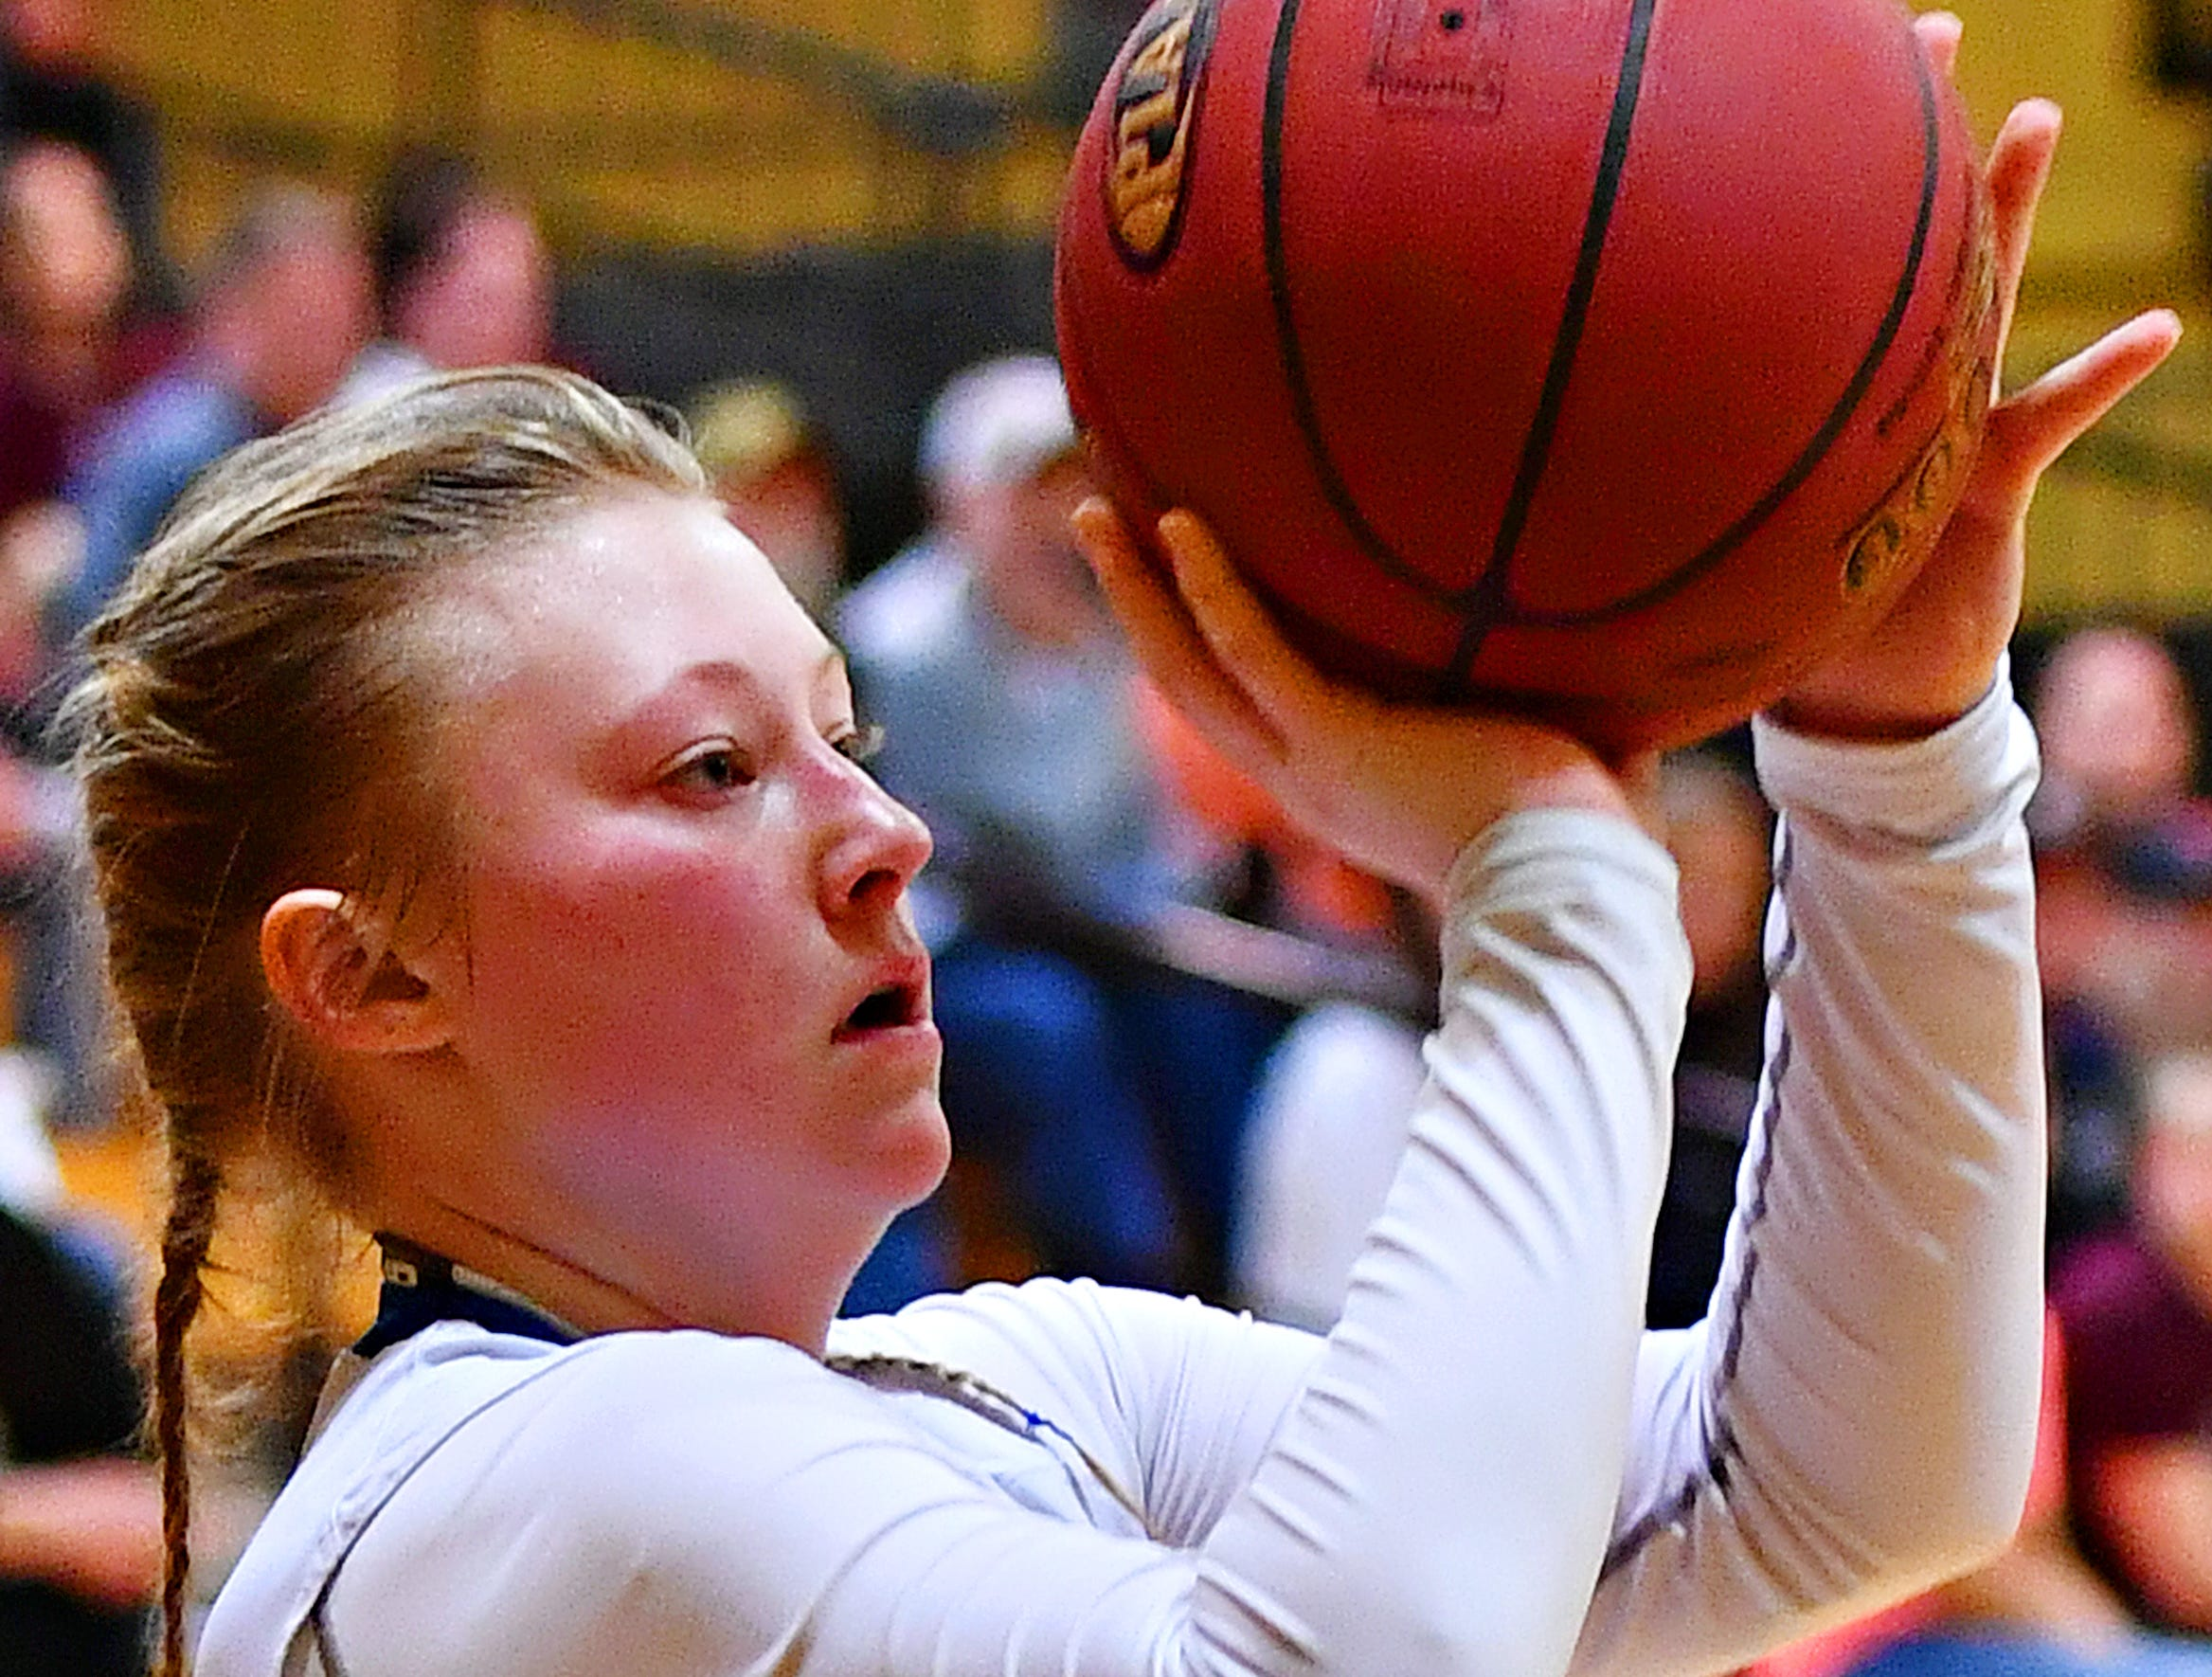 Kennard-Dale vs Mifflinburg during PIAA Class 4-A girl's basketball second round at Milton Hershey High School in Hershey, Wednesday, March 13, 2019. Mifflinburg would win the game 51-45. Dawn J. Sagert photo